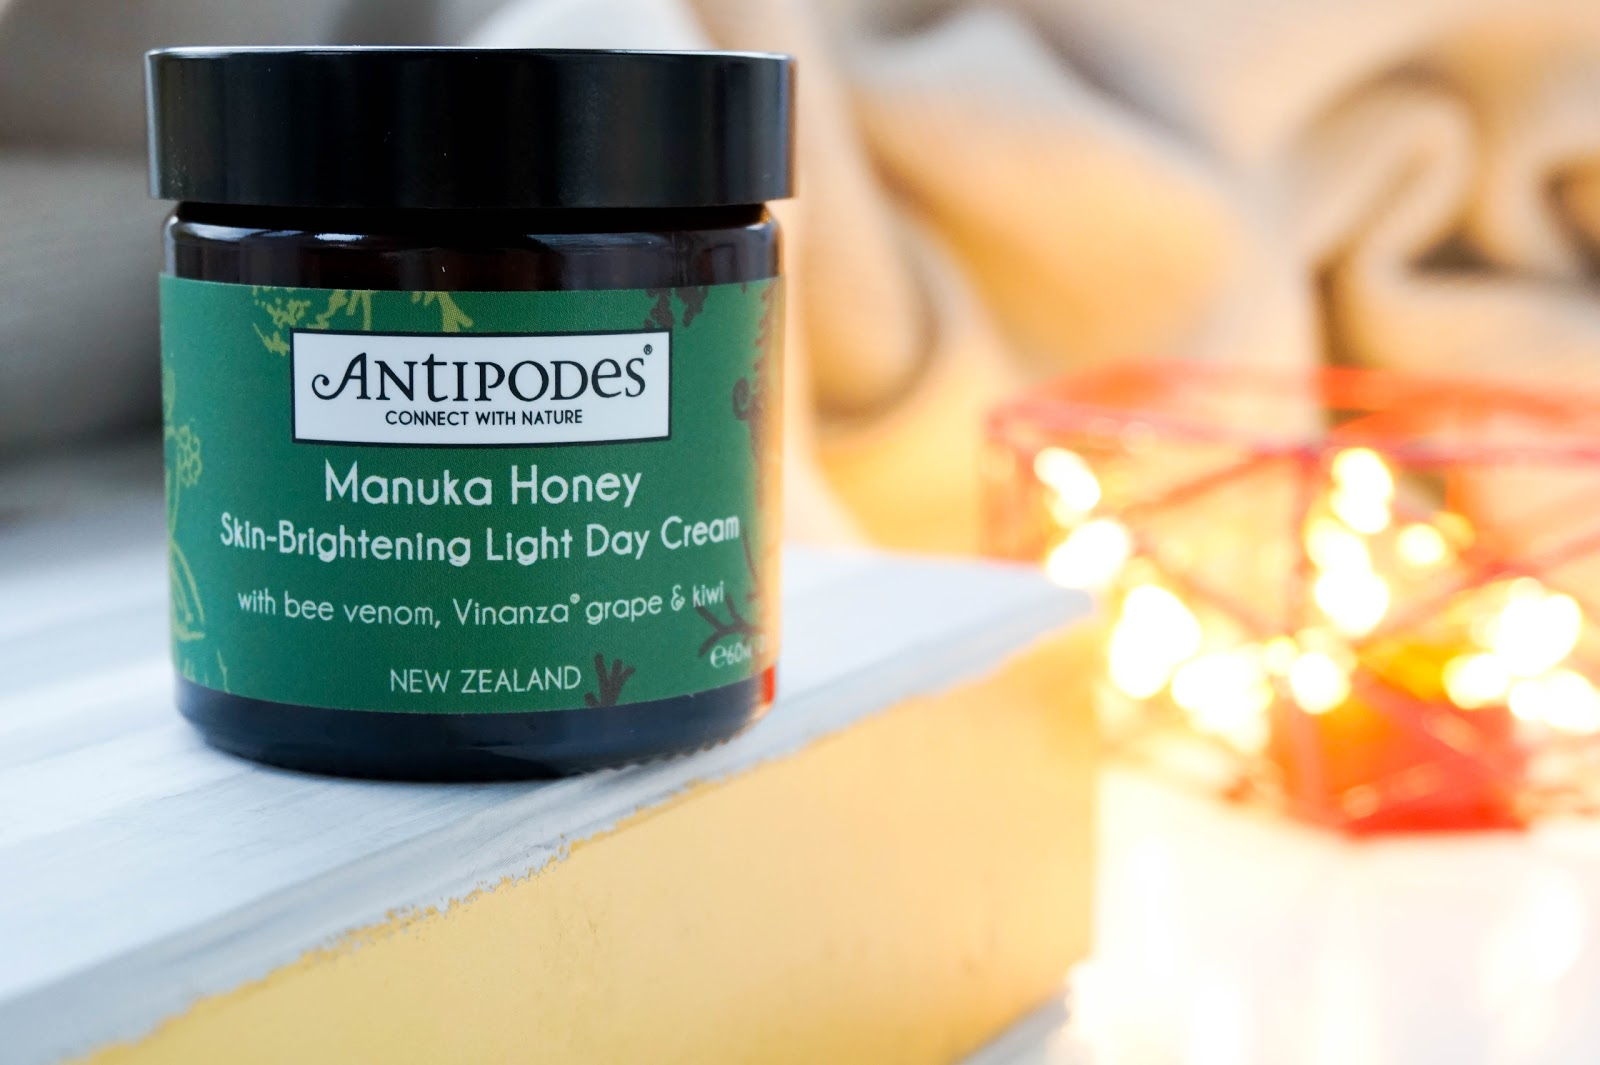 NEW Antipodes Manuka Honey Range... Manuka Honey Skin Brightening Light Day Cream, Manuka Honey Skin Brightening Eye Cream